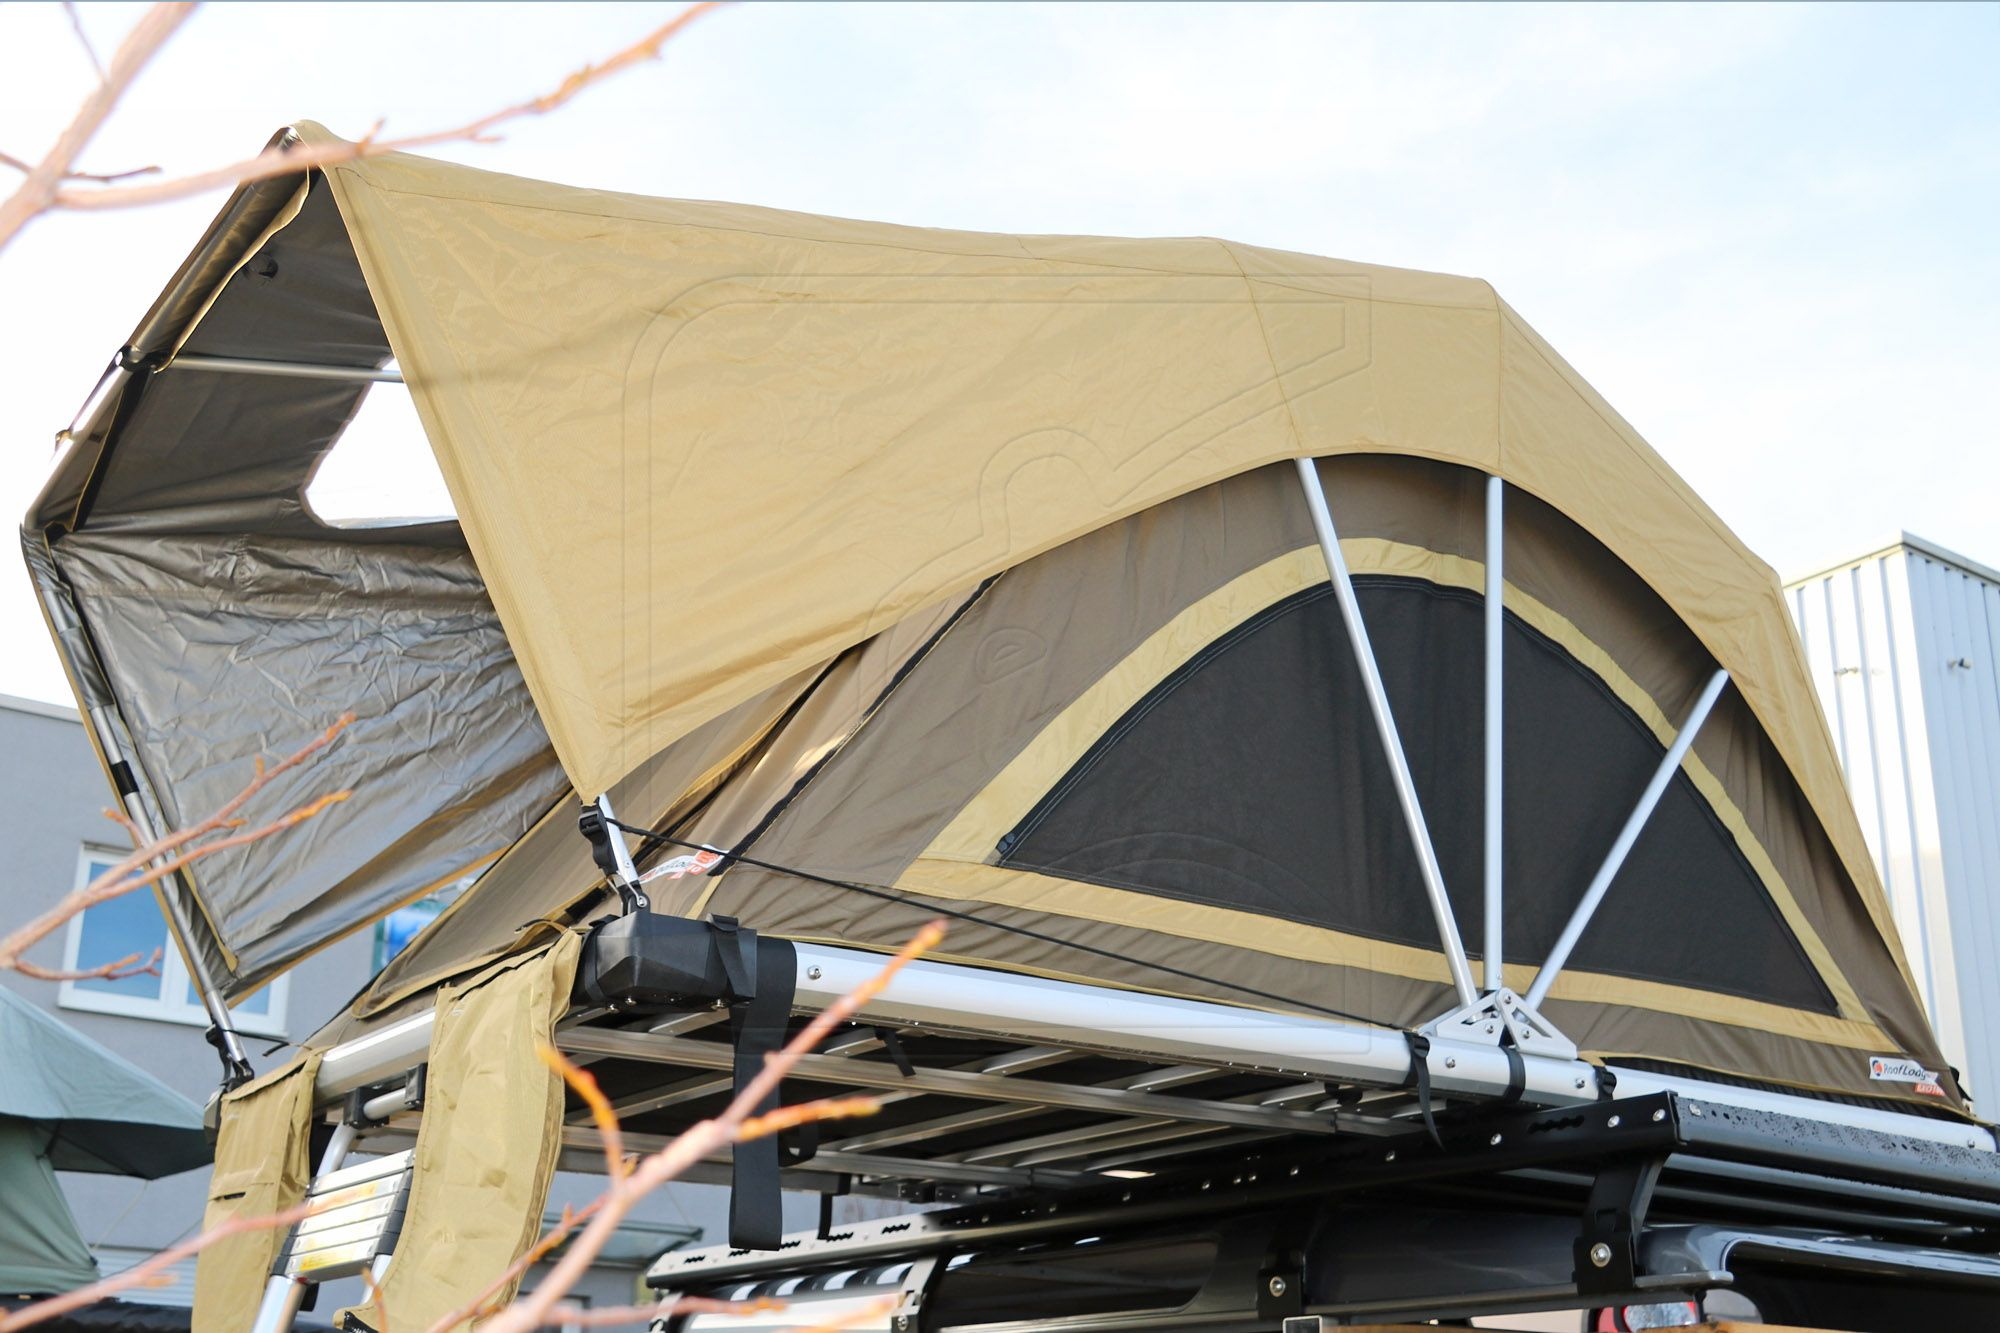 Sand u0026 Brown Roof Lodge Tent Exo : roof lodge tent - memphite.com